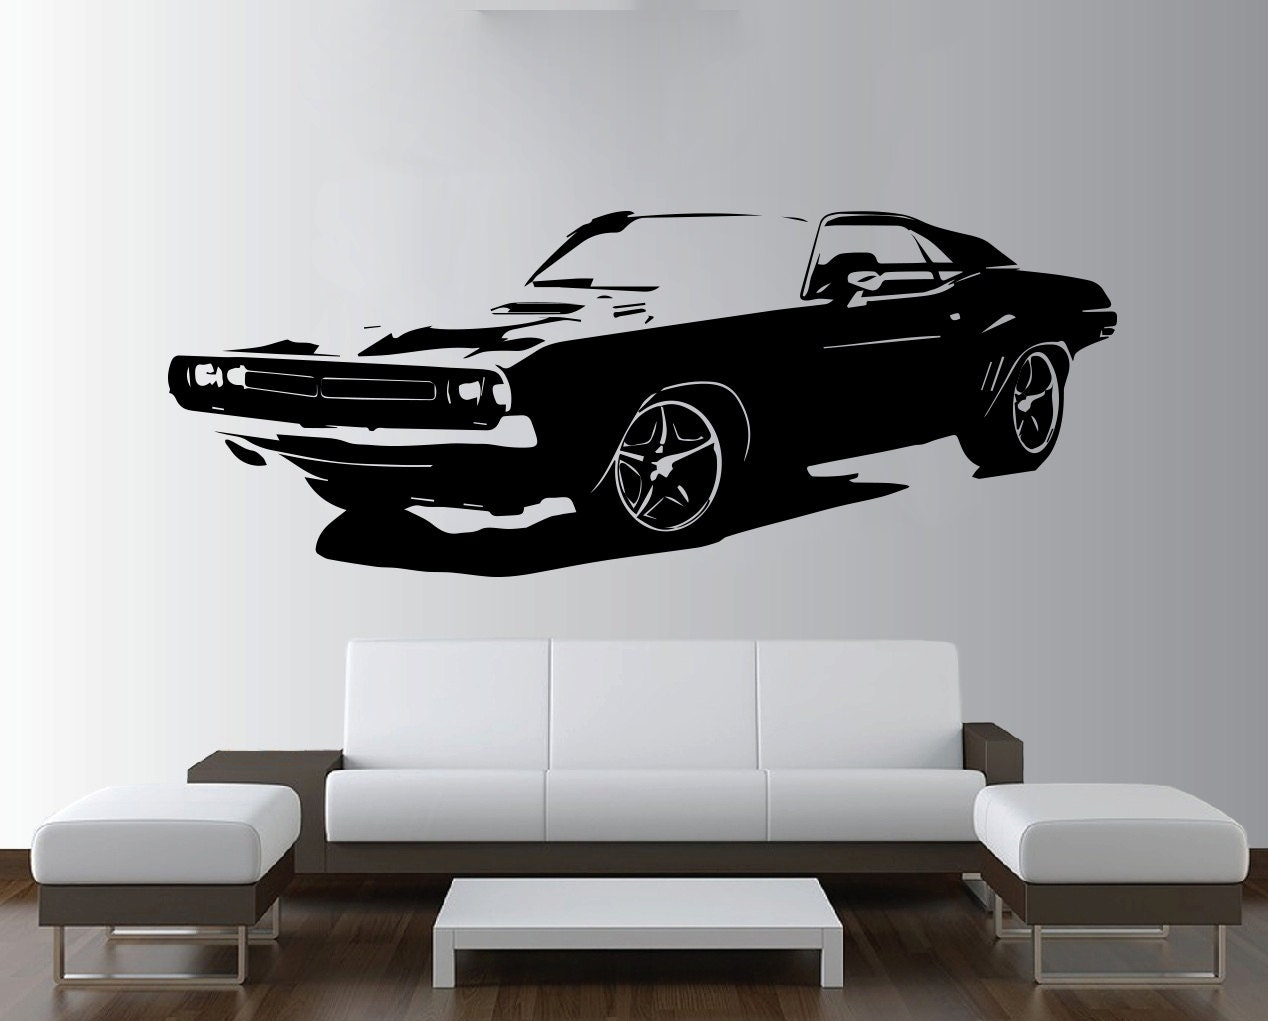 Large car dodge challenger muscle wall art decal mural sticker for Cars wall mural sticker